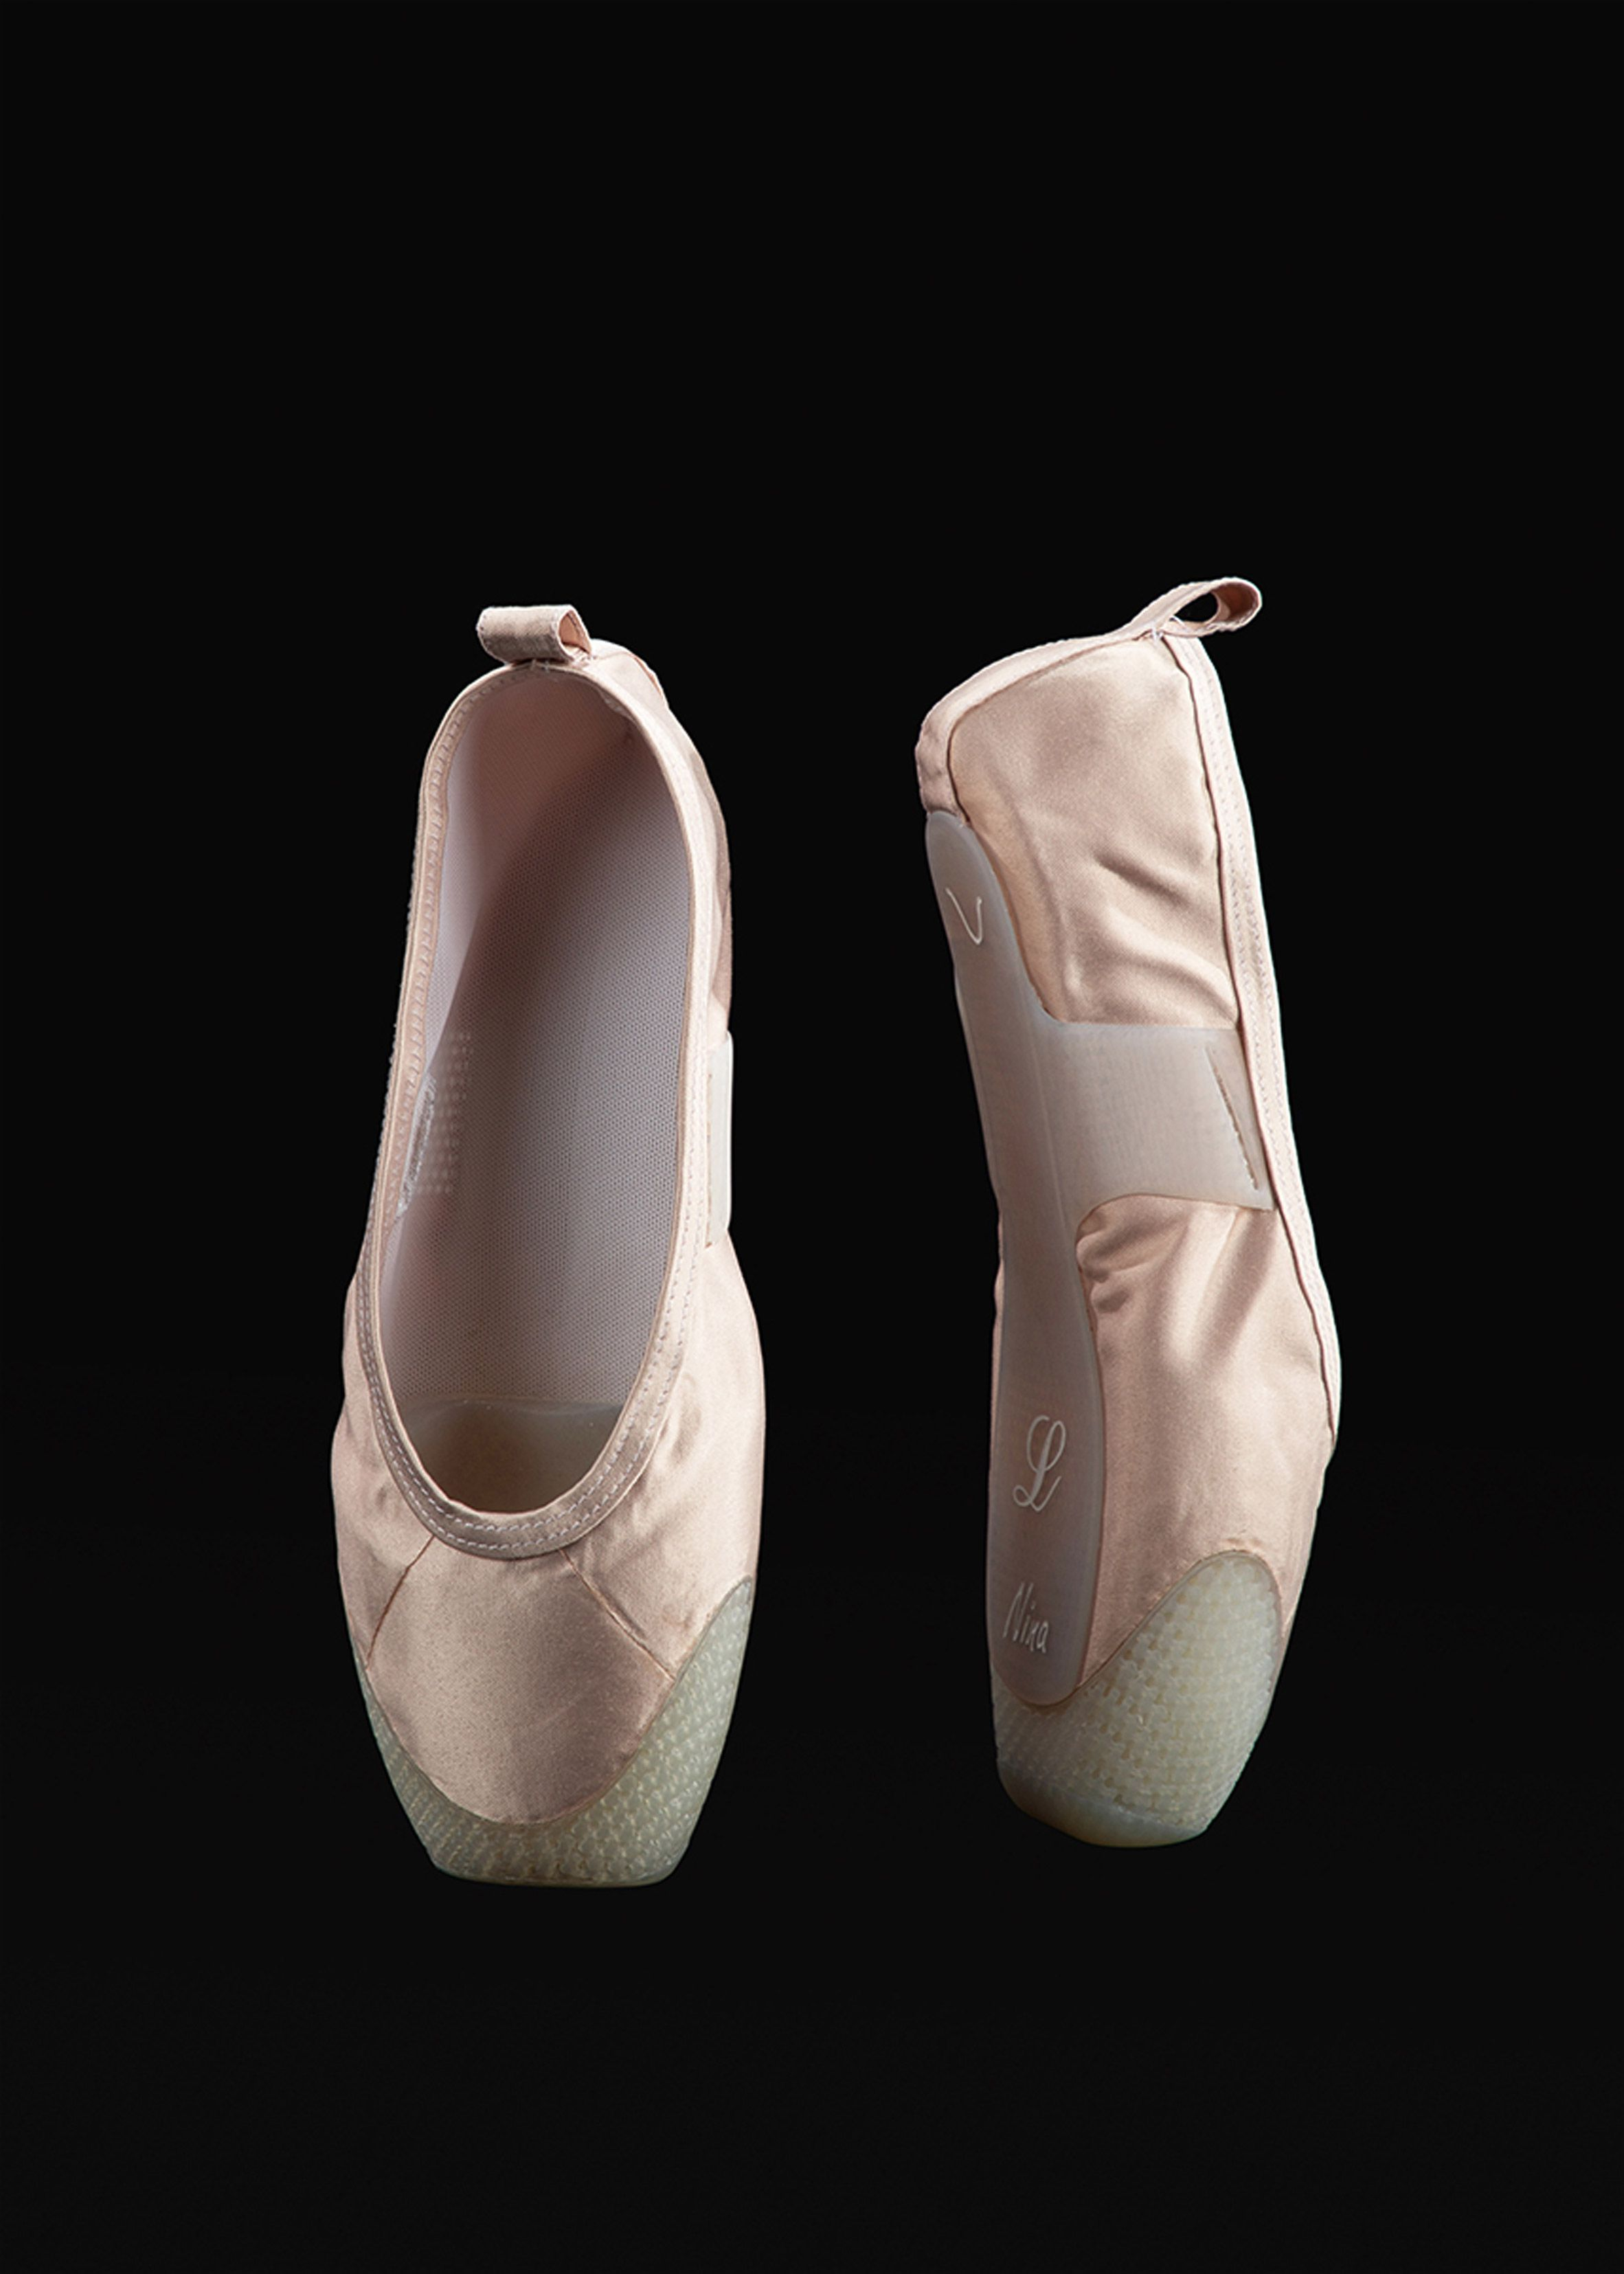 1b89916c2 P-rouette is a 3D-printed ballet shoe that reduces pain felt by the ...